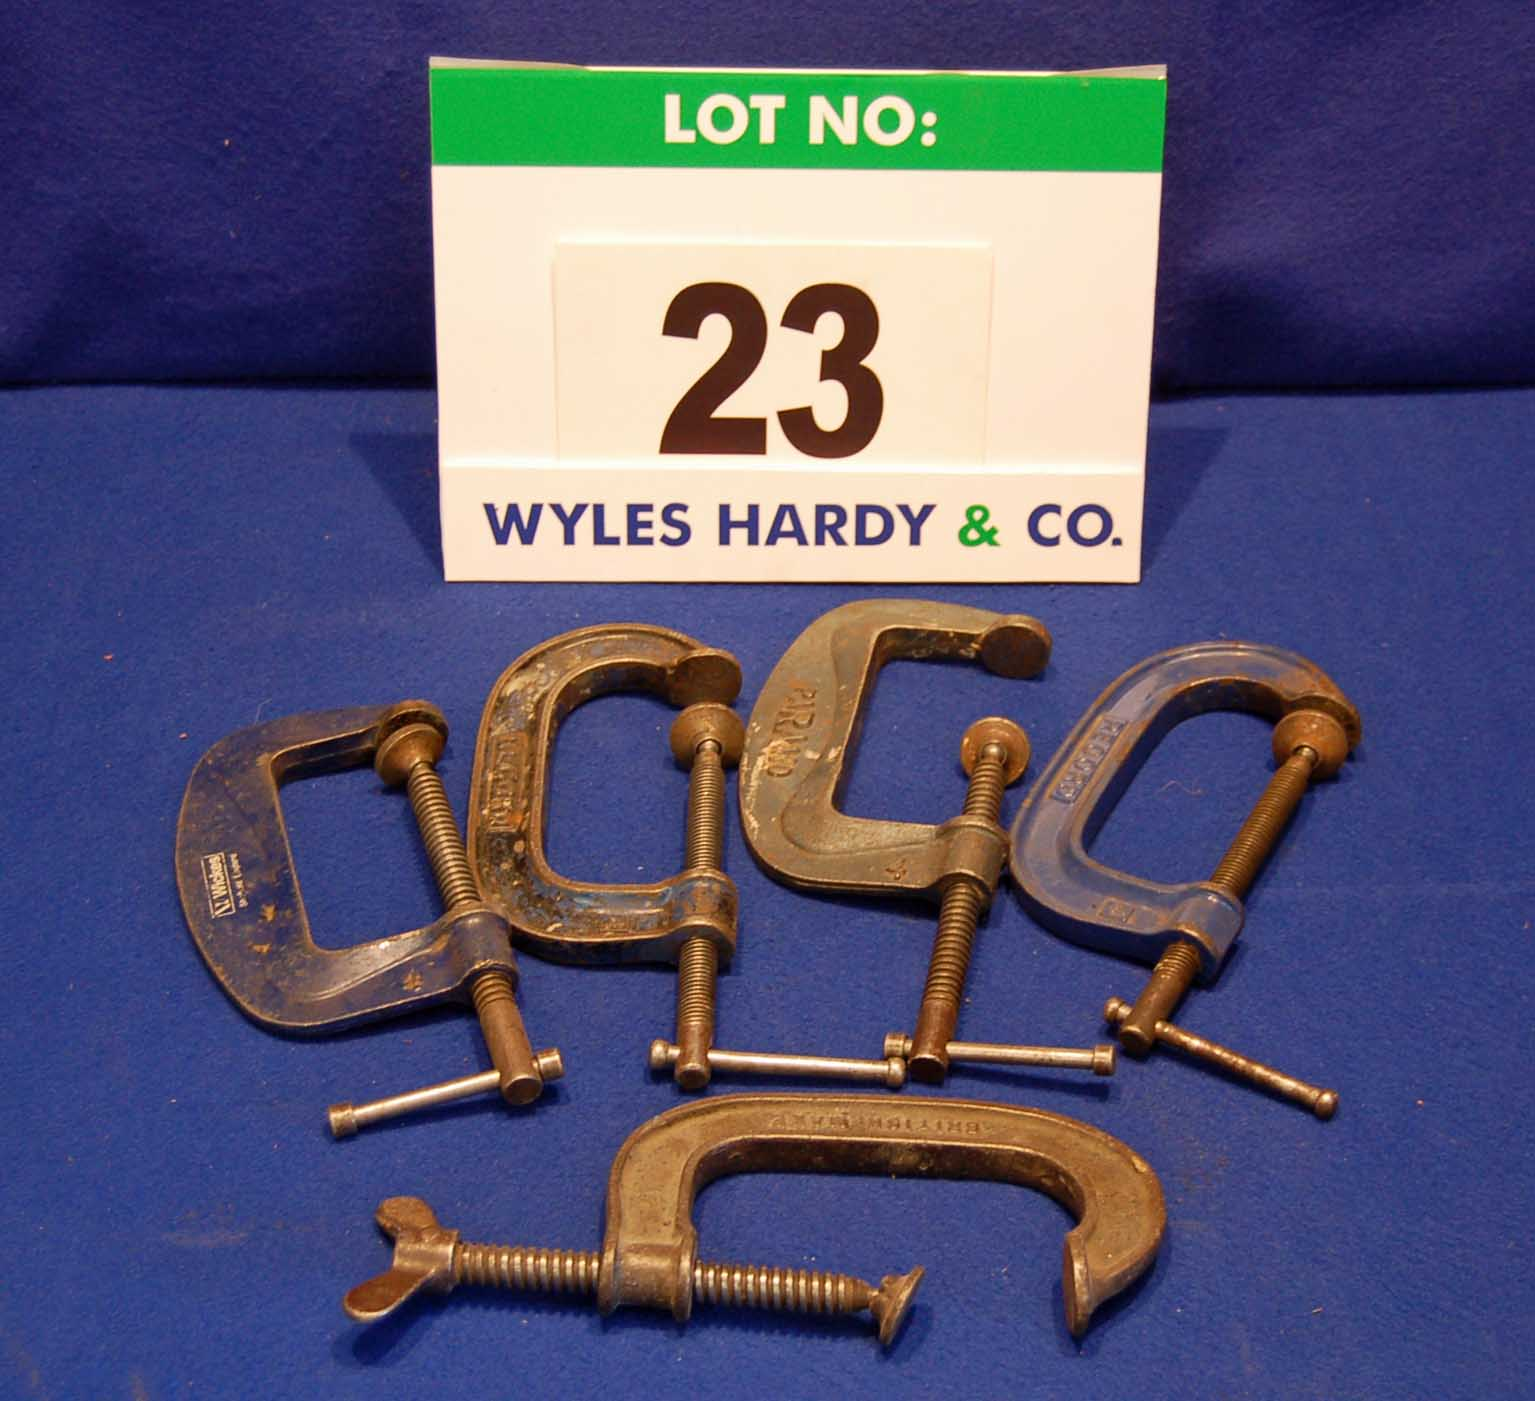 Lot 23 - Five 4 Inch G Clamps (As Photographed)